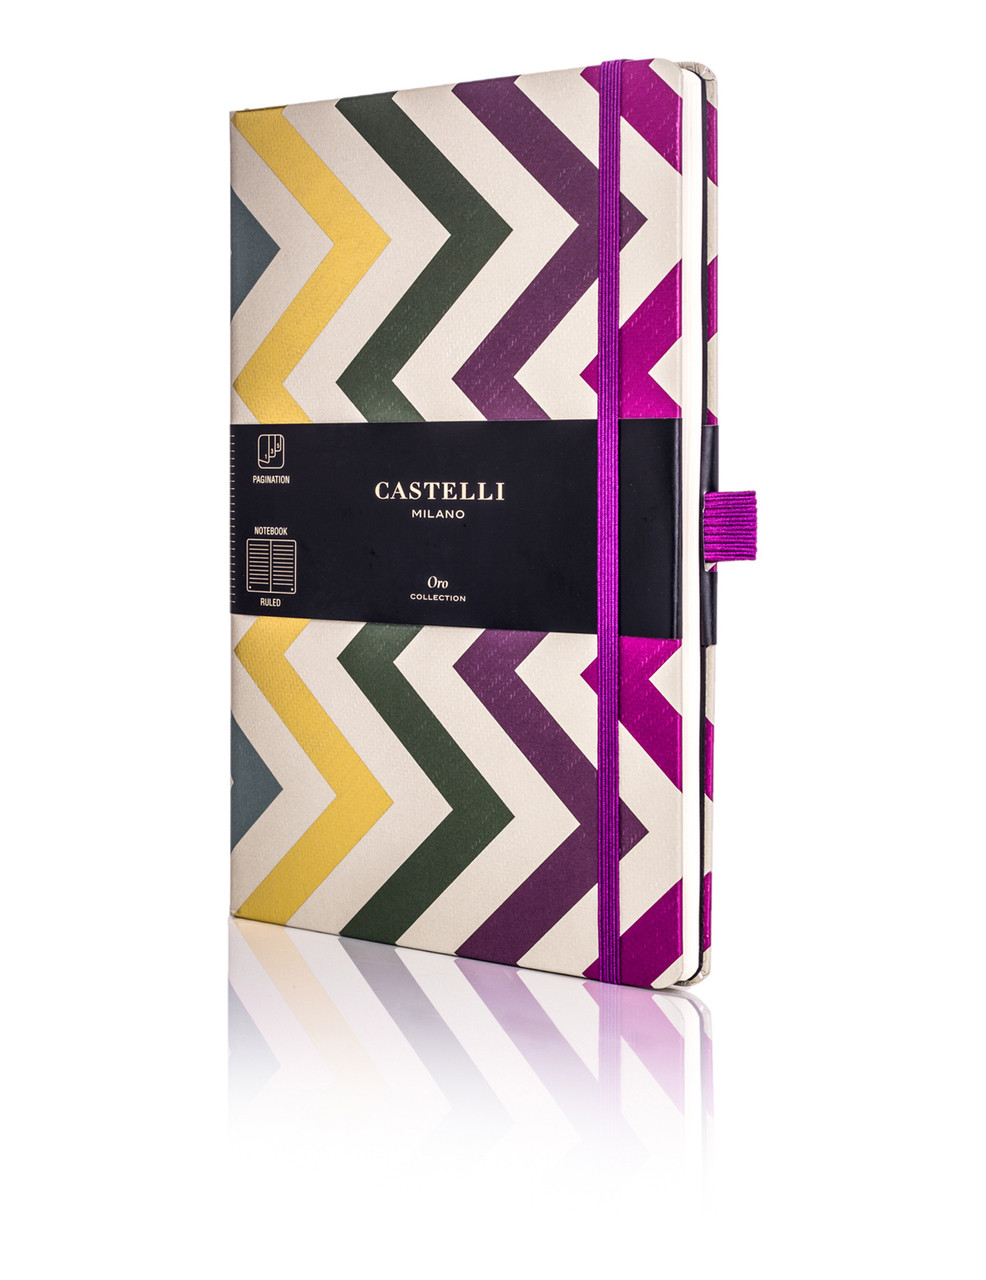 Castelli Oro journal, Frets